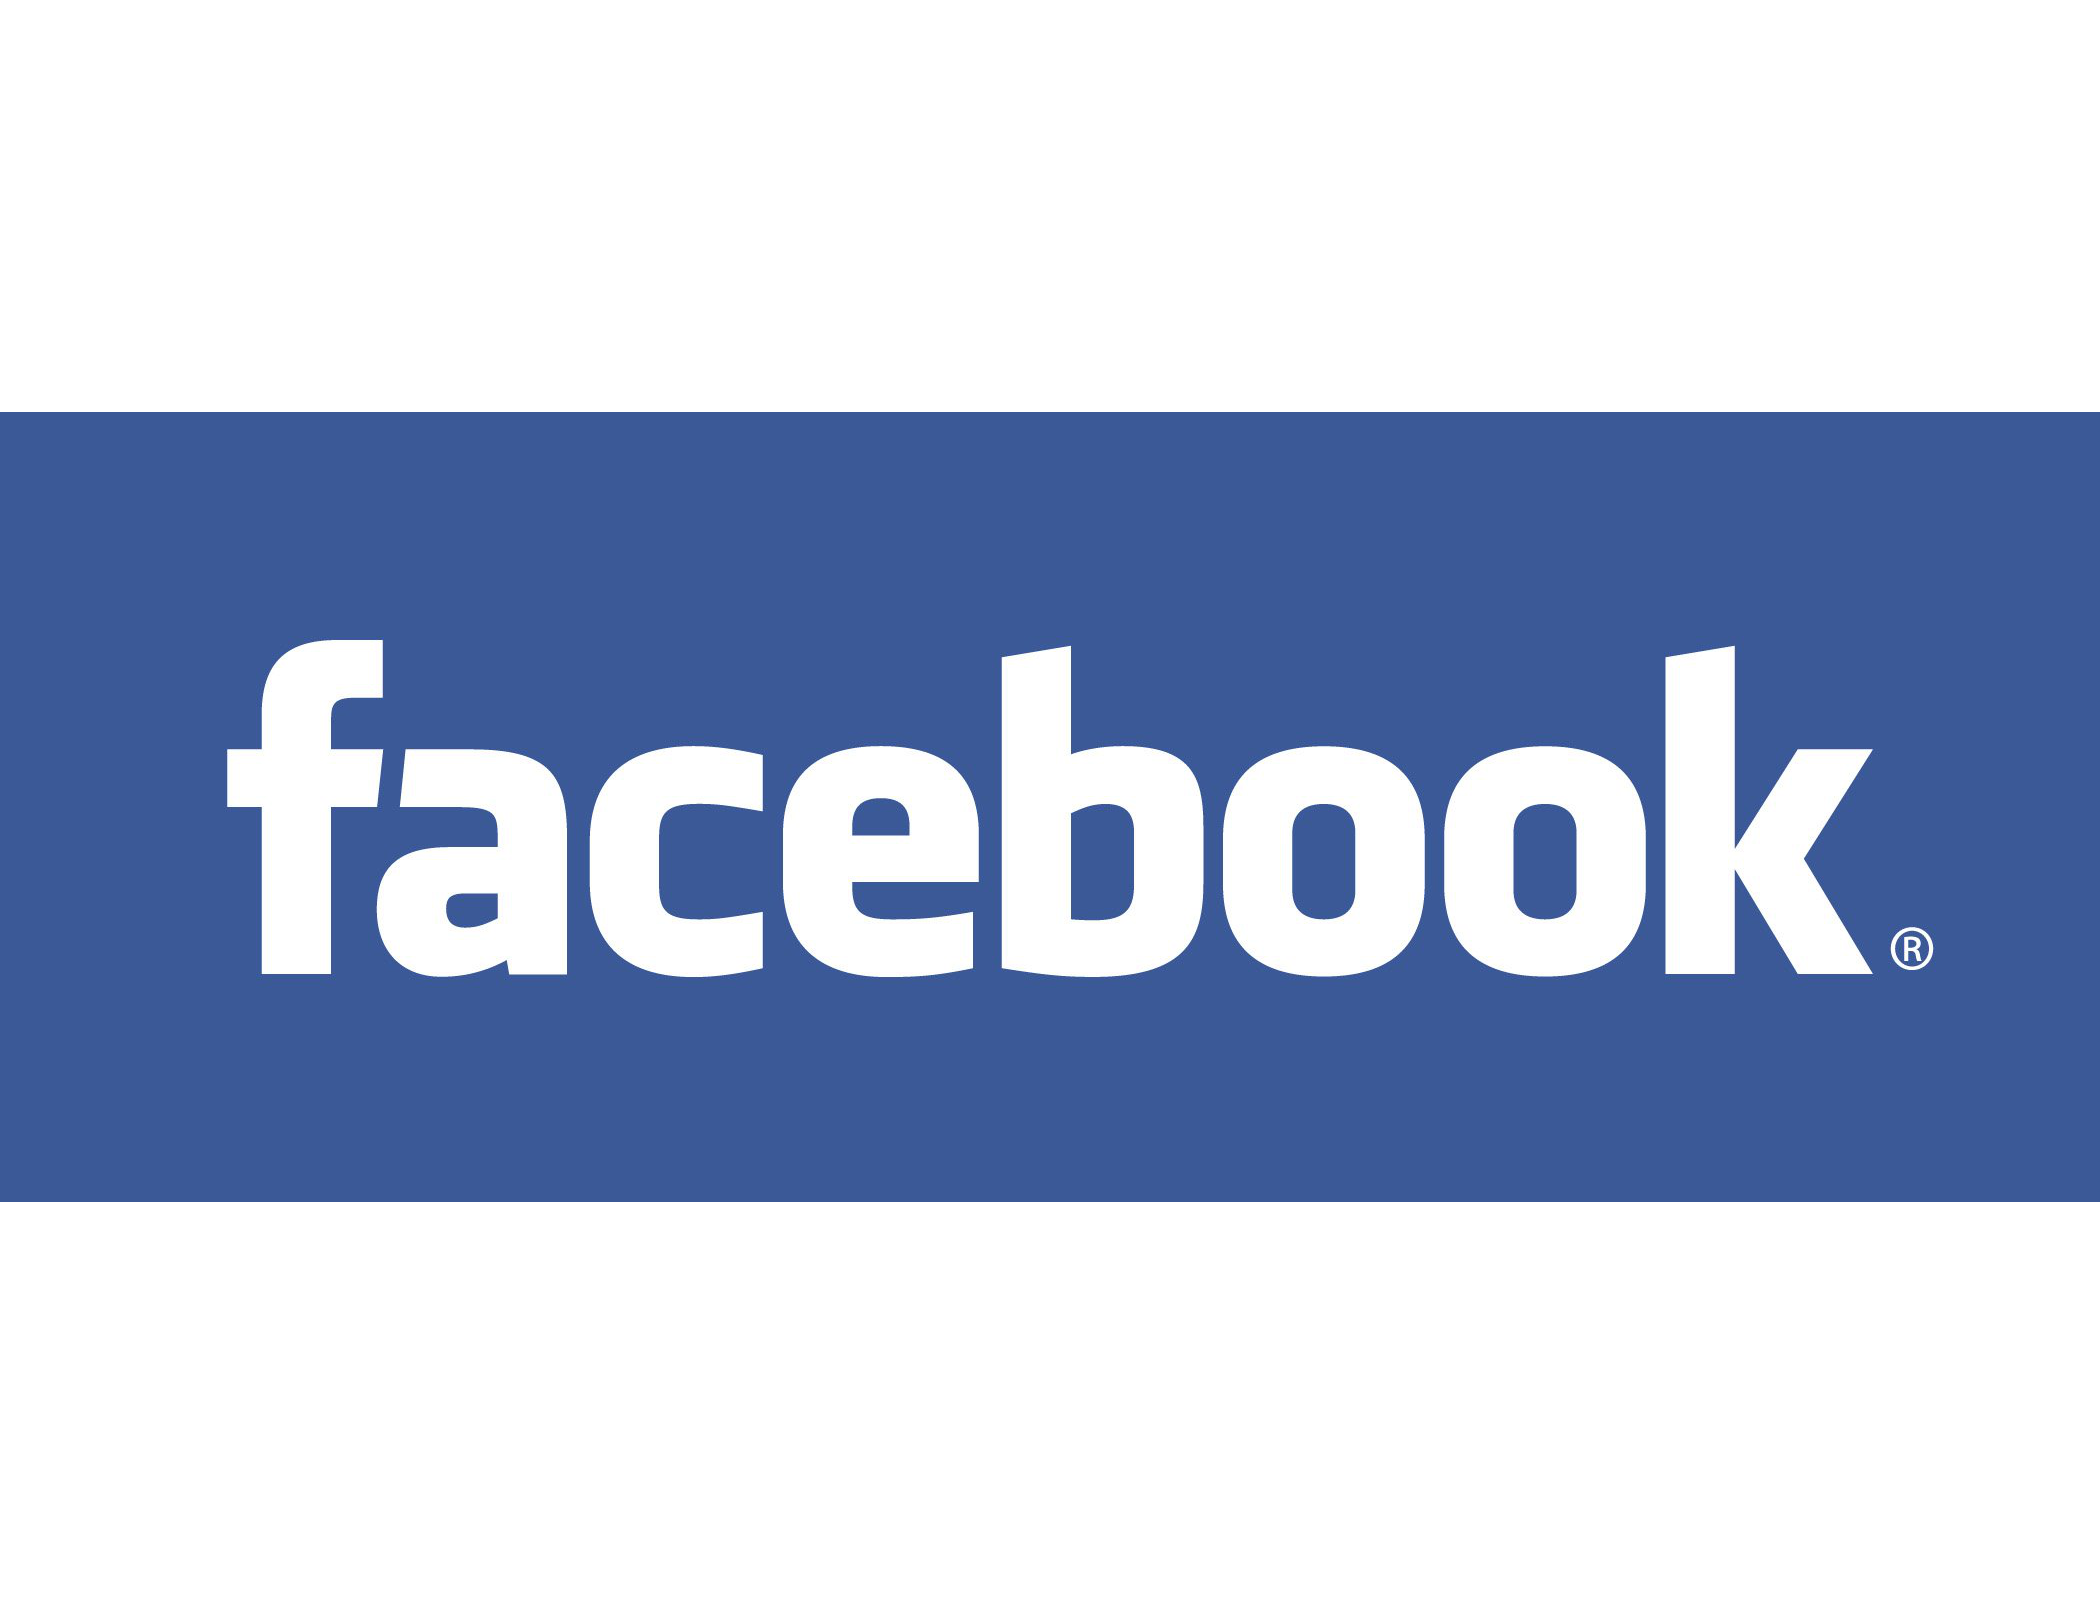 Download Facebook Logo PNG 9016